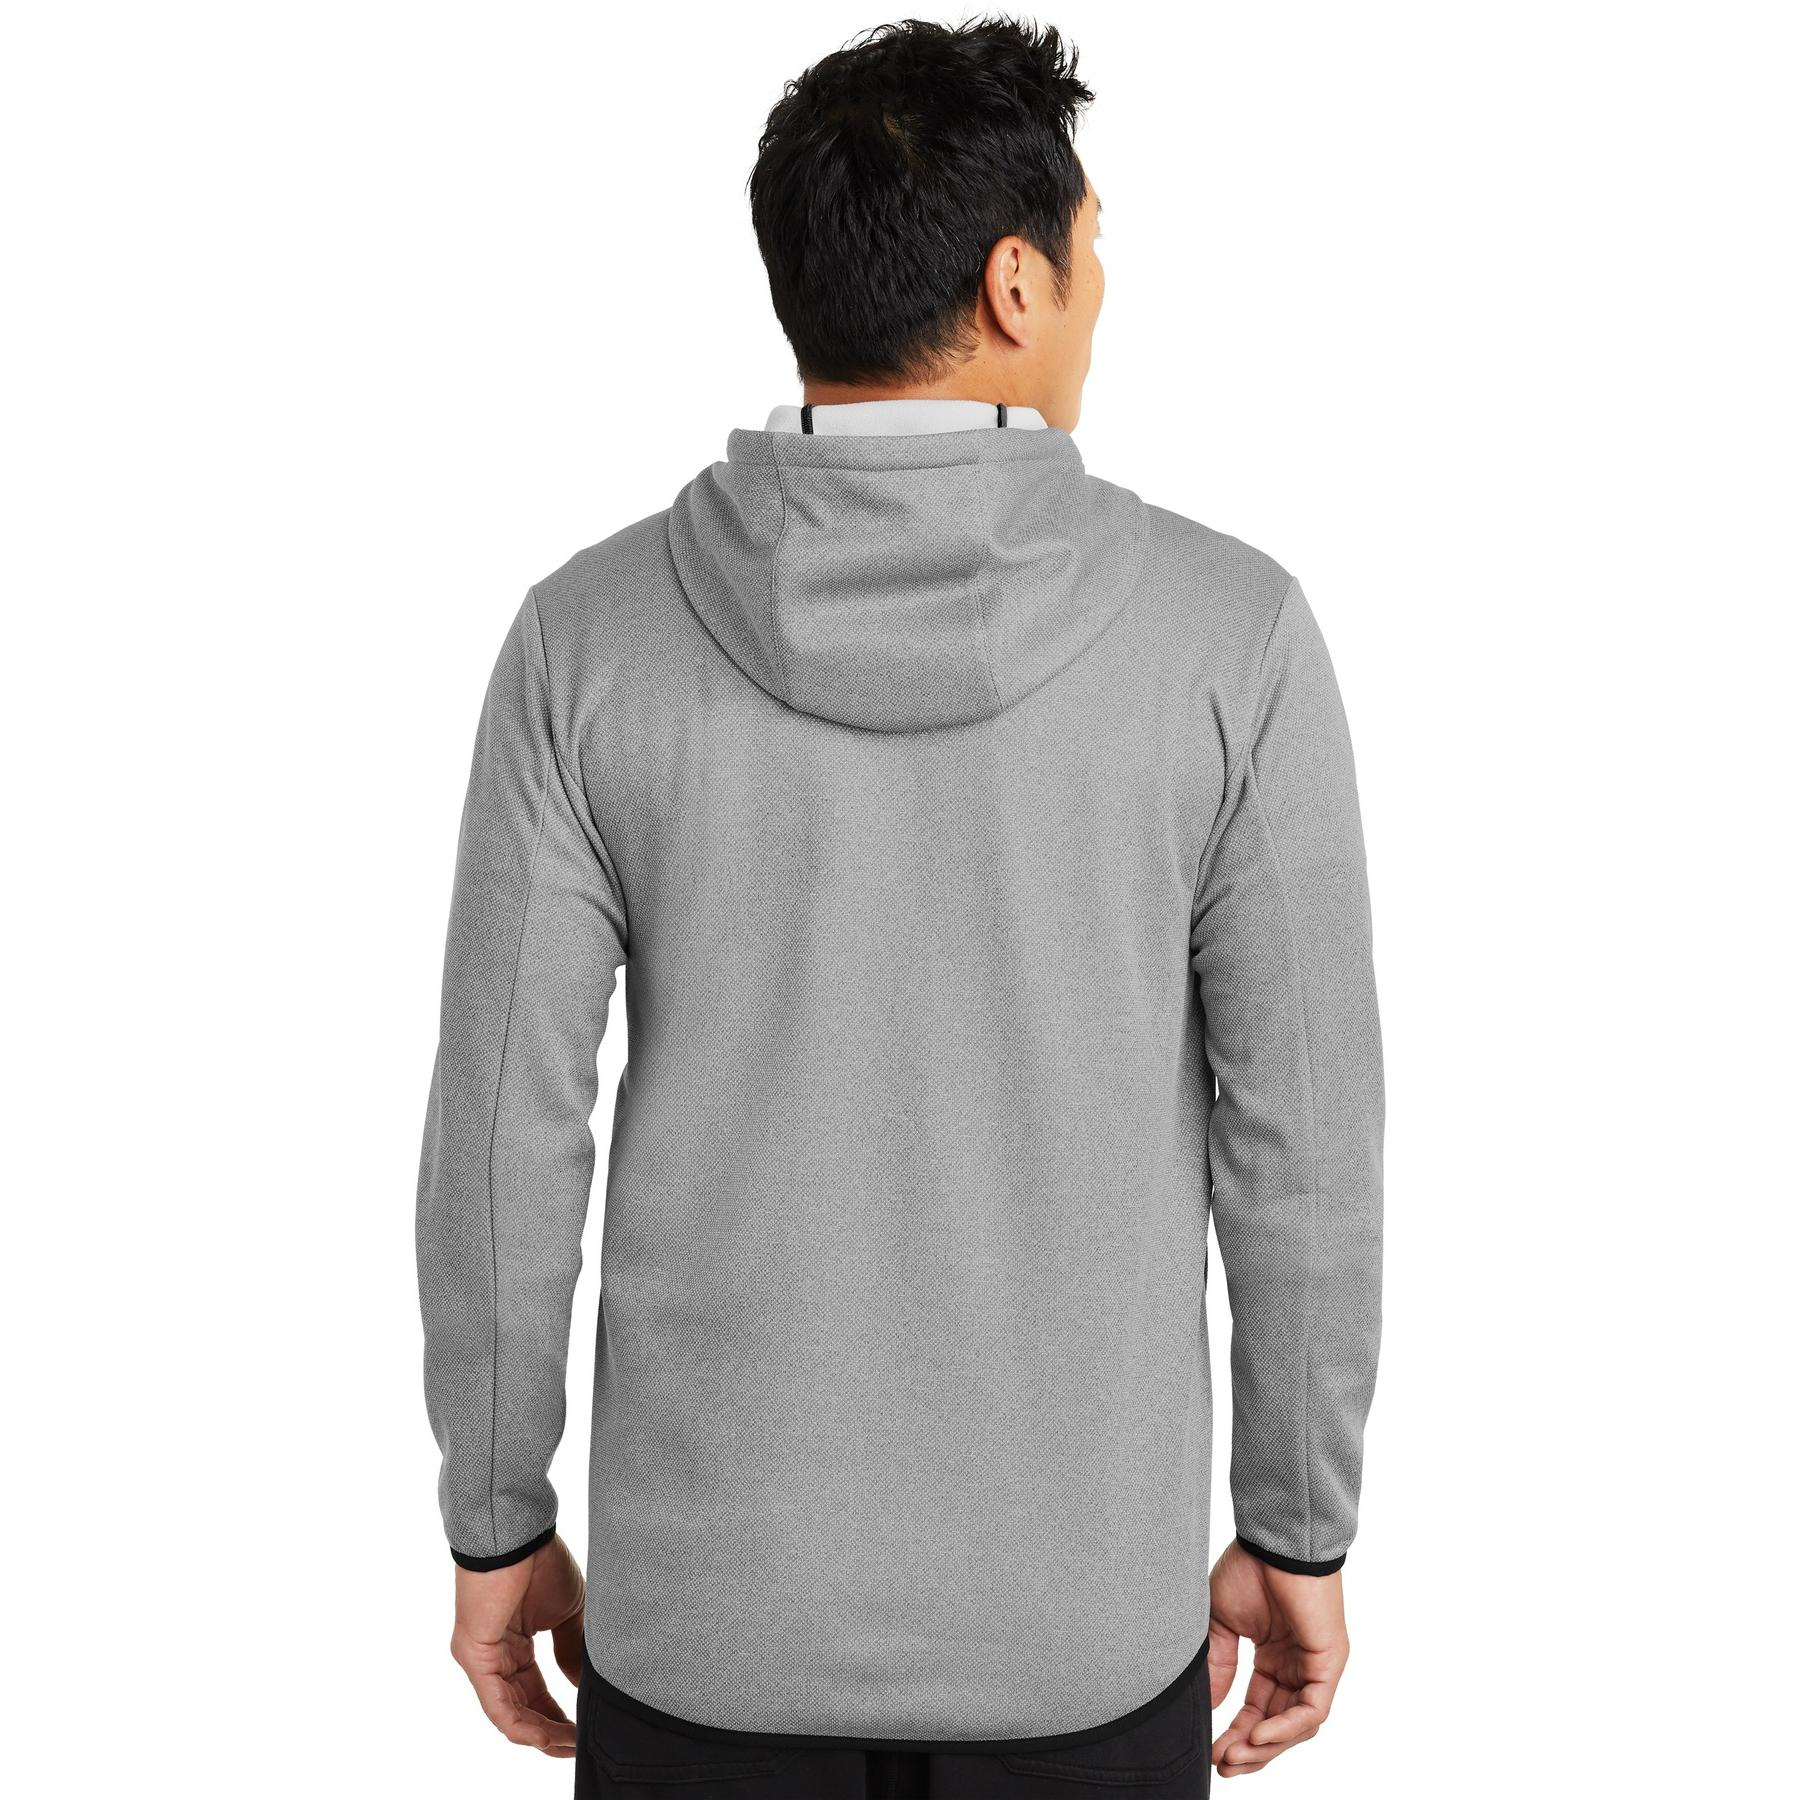 3a9ff29ef4e2 Nike NKAH6268 Therma-FIT Textured Fleece Full-Zip Hoodie - Grey ...